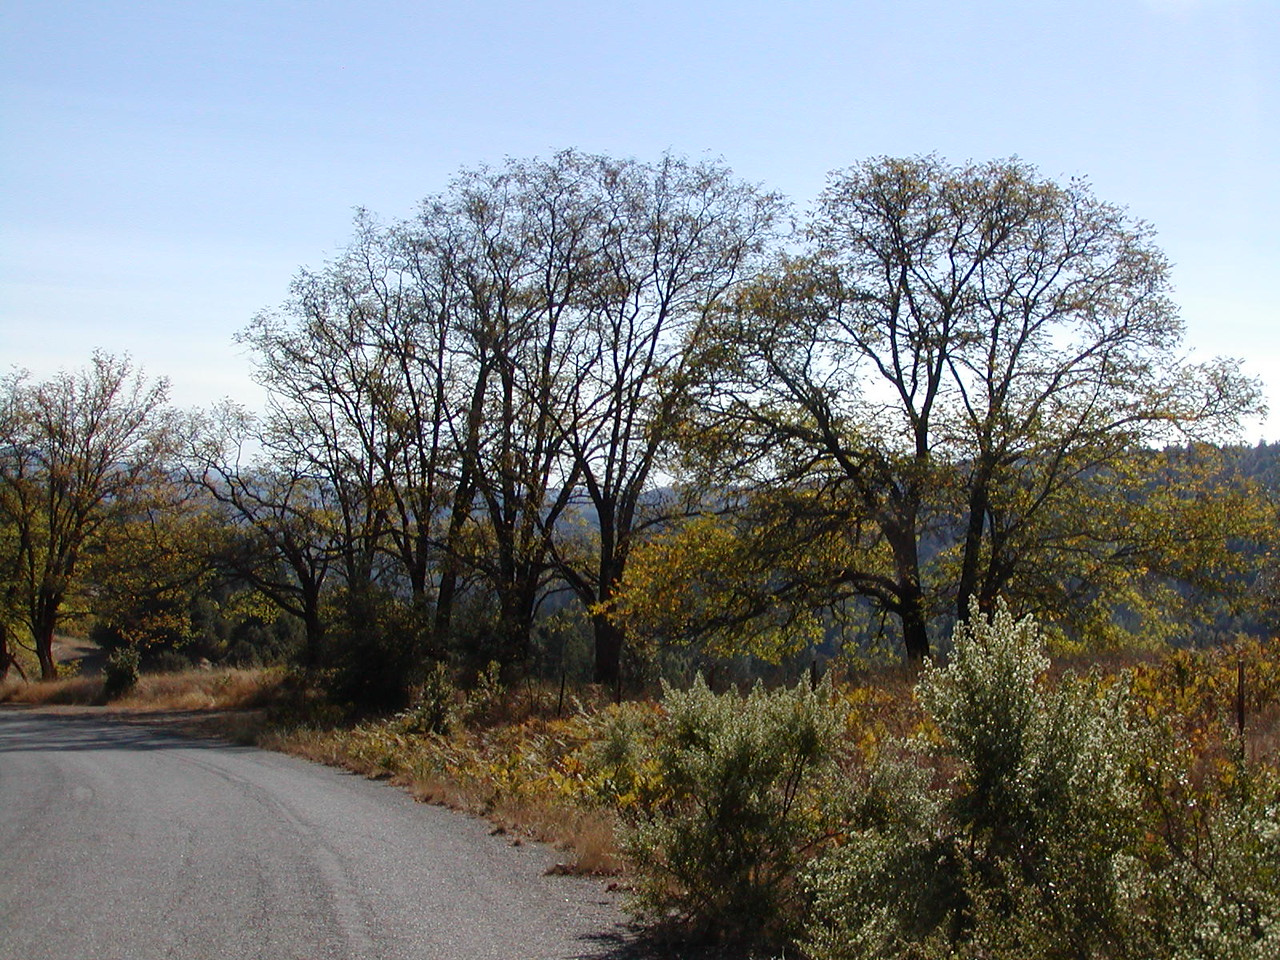 Typical view along road near Honeydew